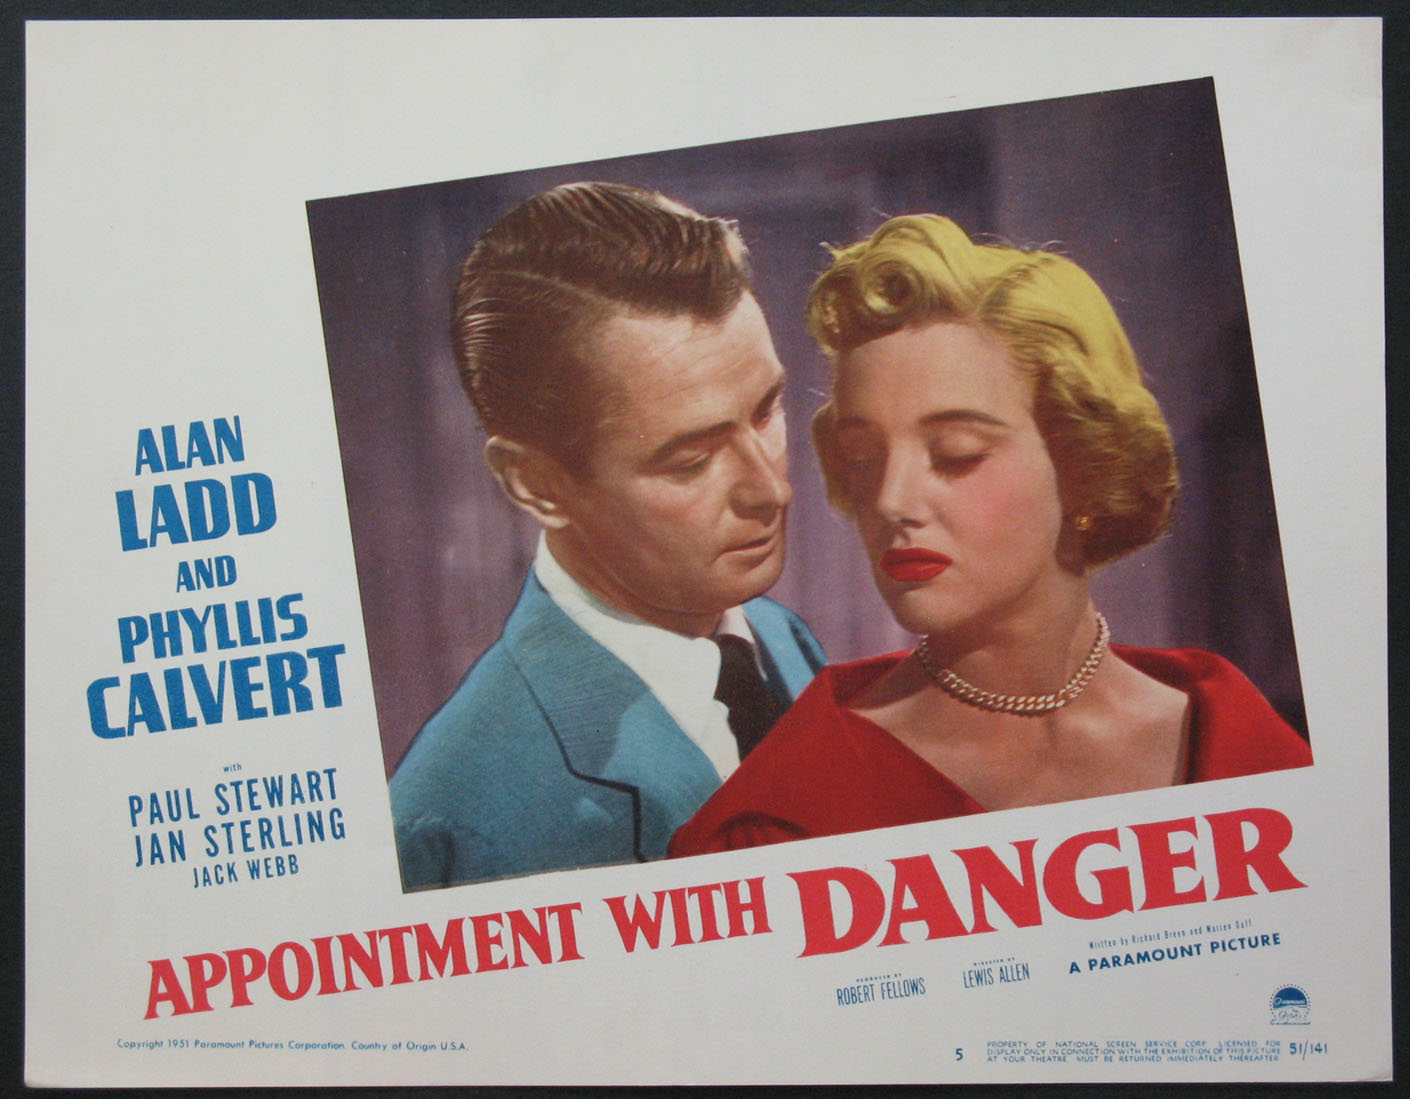 APPOINTMENT WITH DANGER @ FilmPosters.com